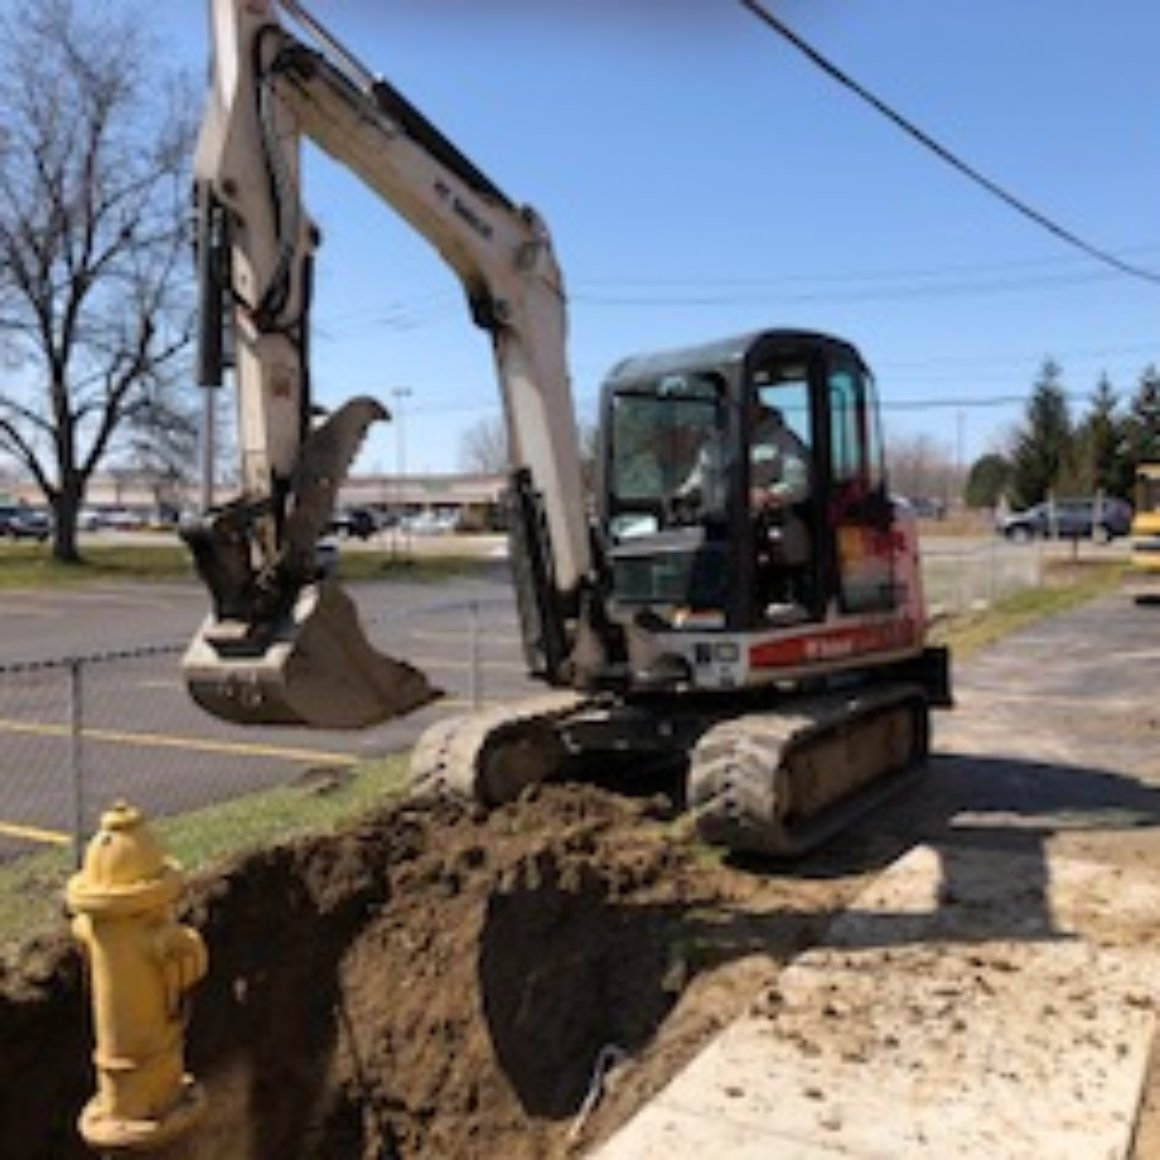 demolition removal of fire hydrant